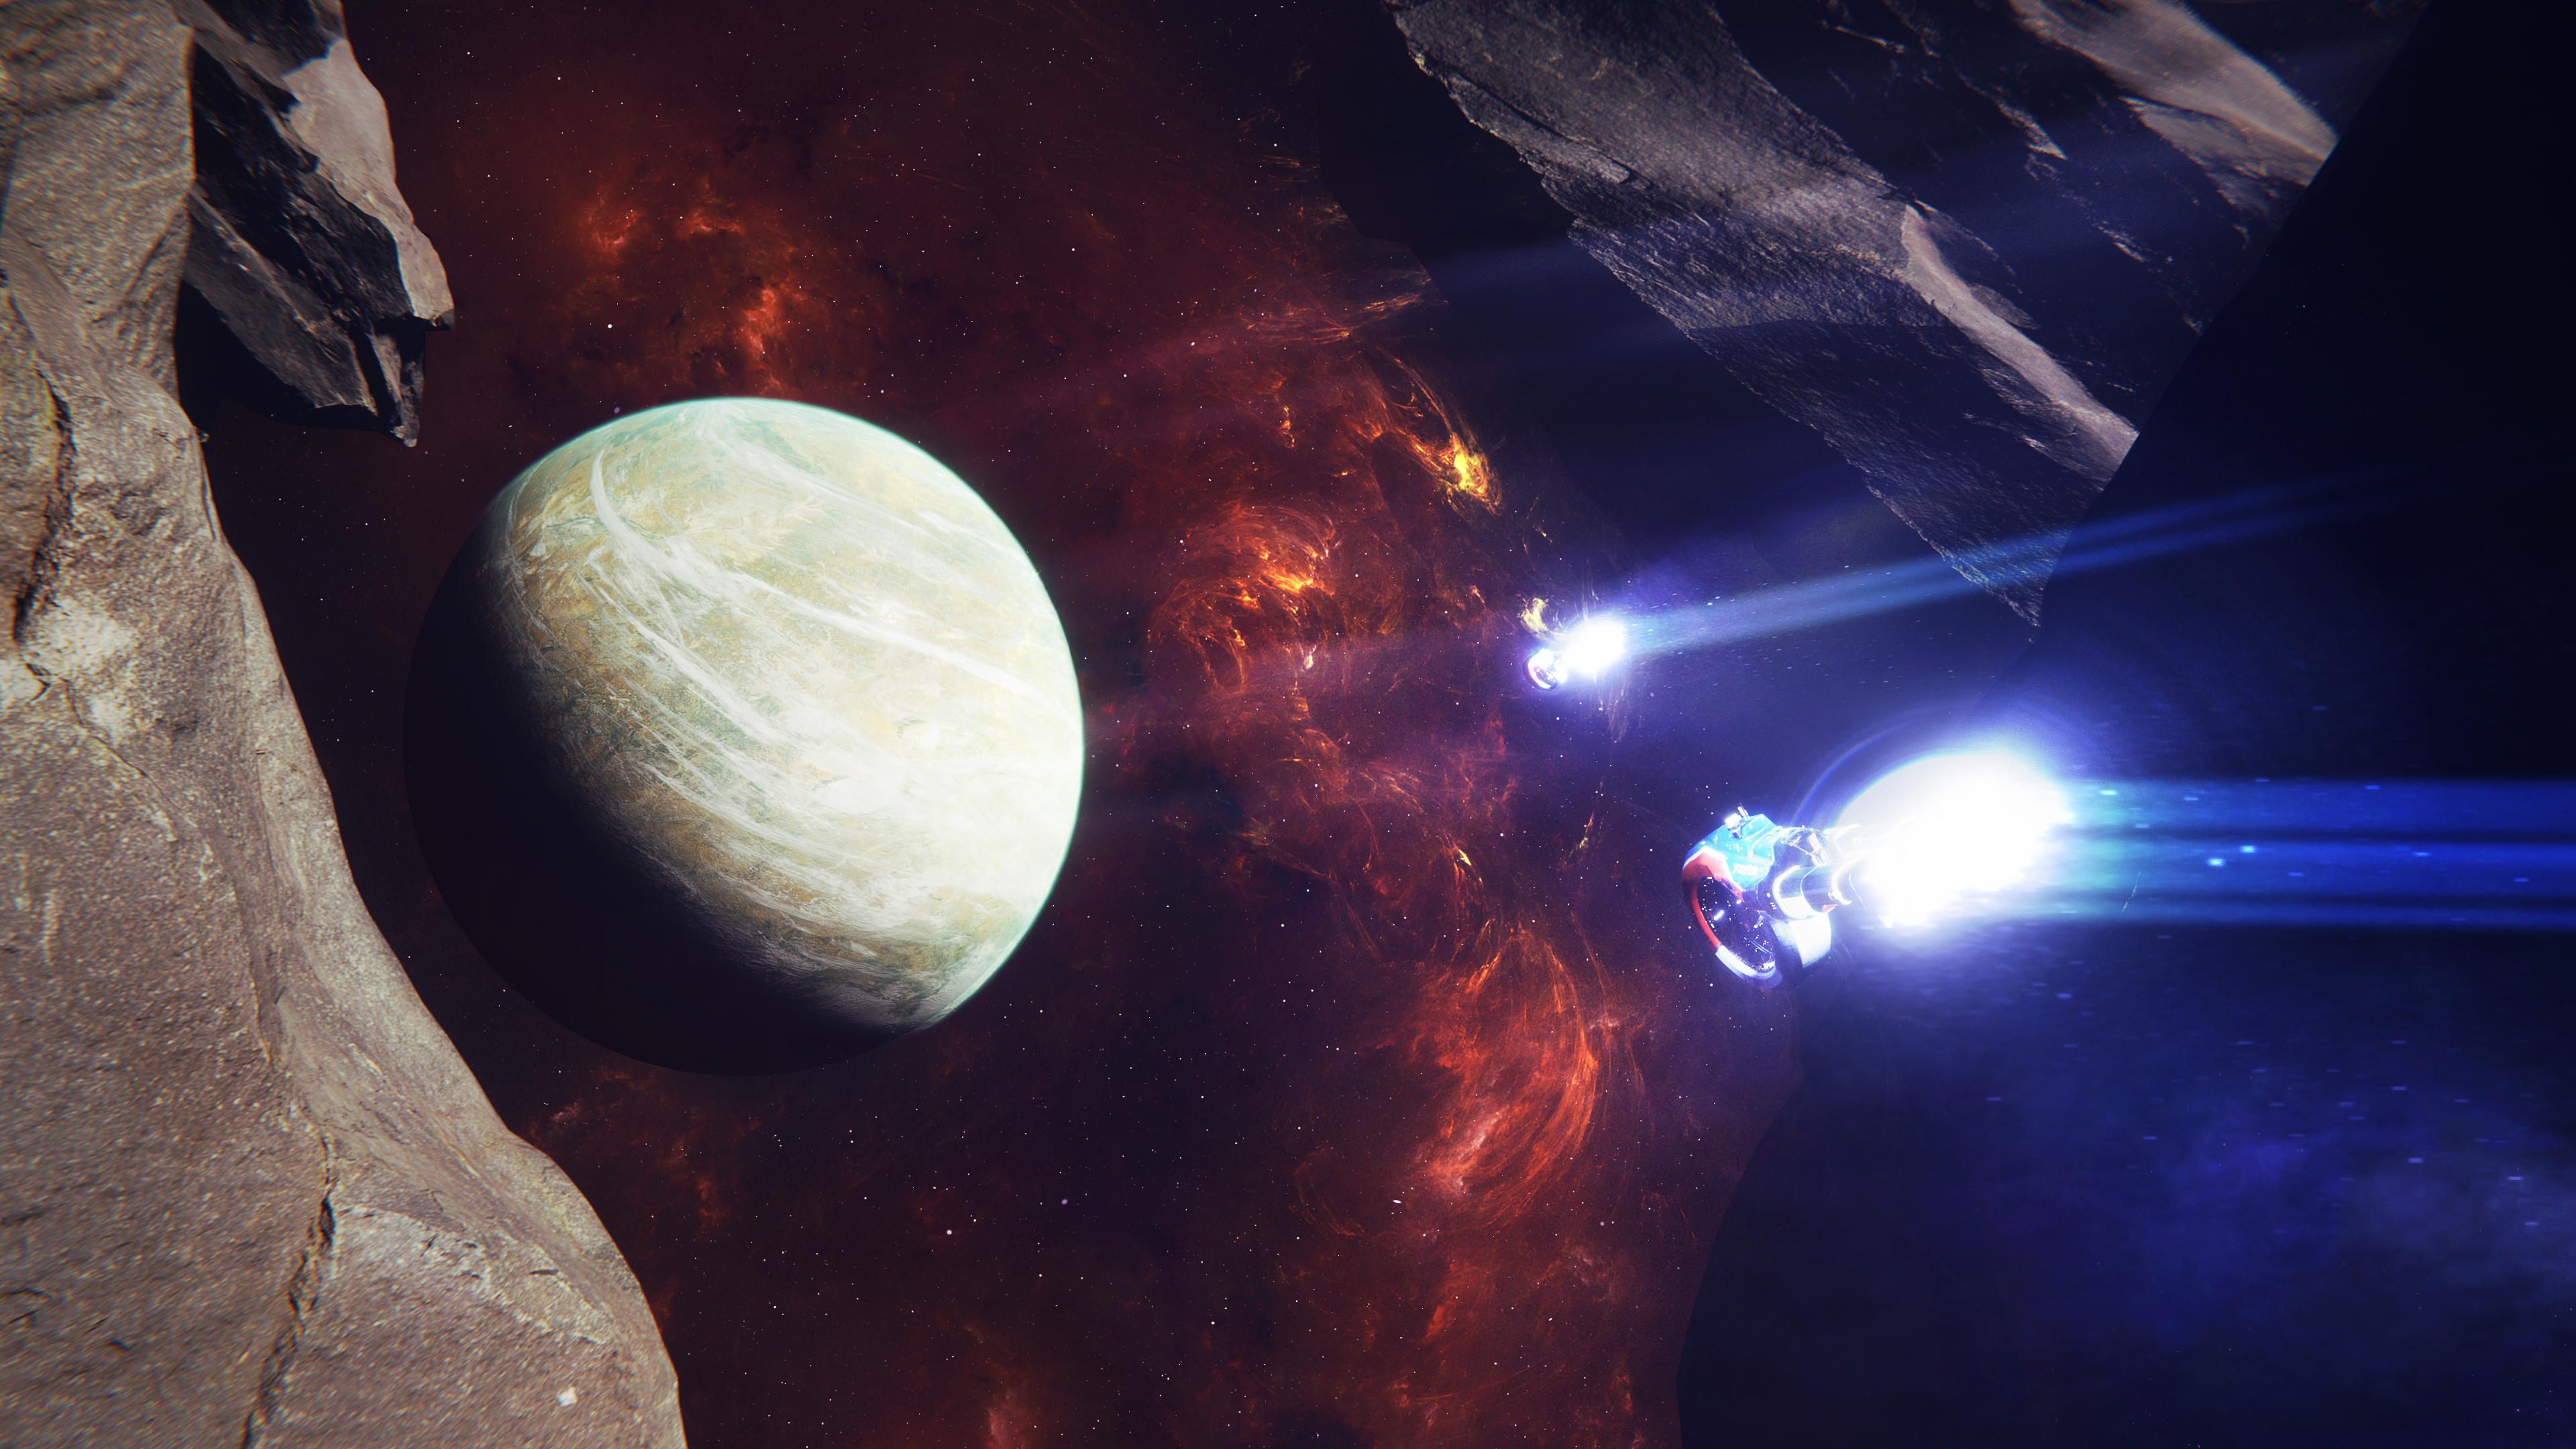 Space Spaceship Spacescapes Planet Asteroid Nebula 3840x2160